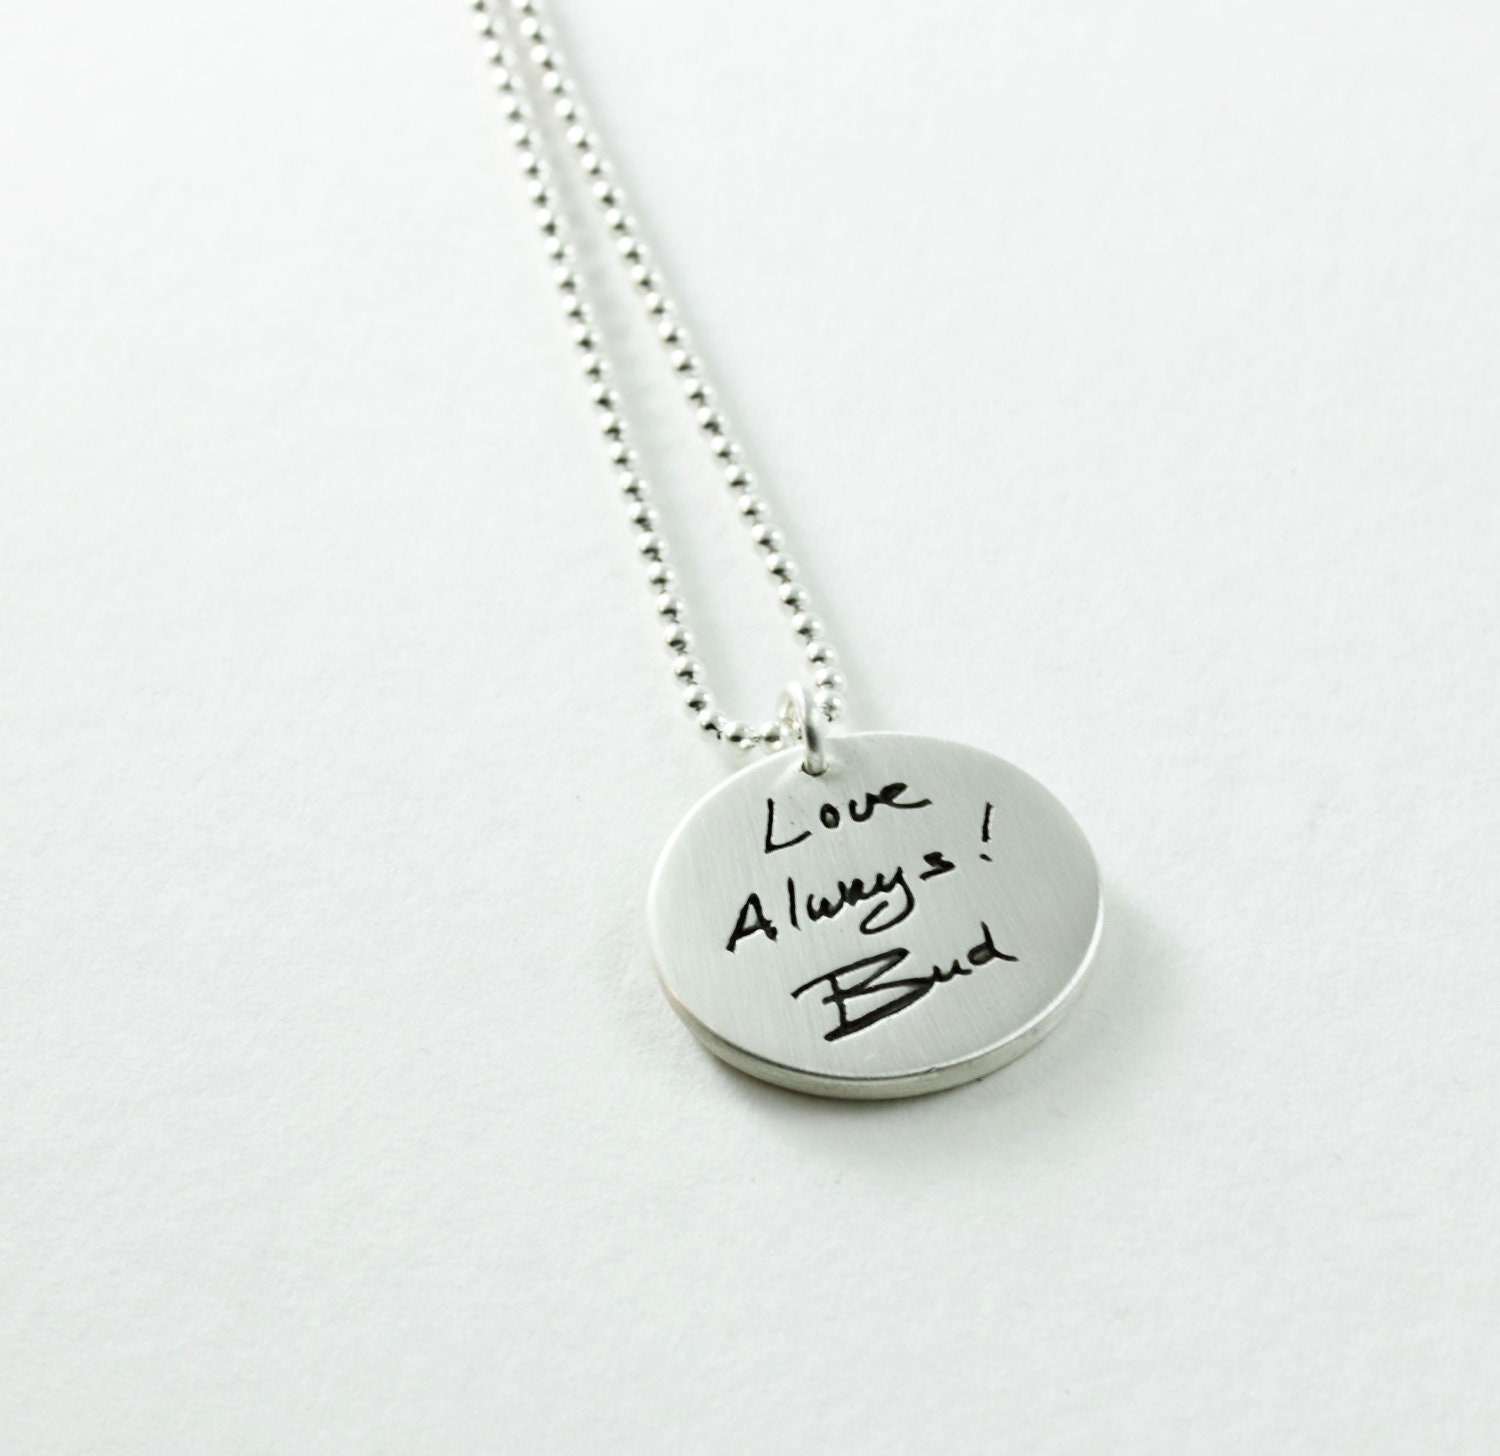 s p necklace ashes memorial of holder pendant heart urn casket silver in picture my forever